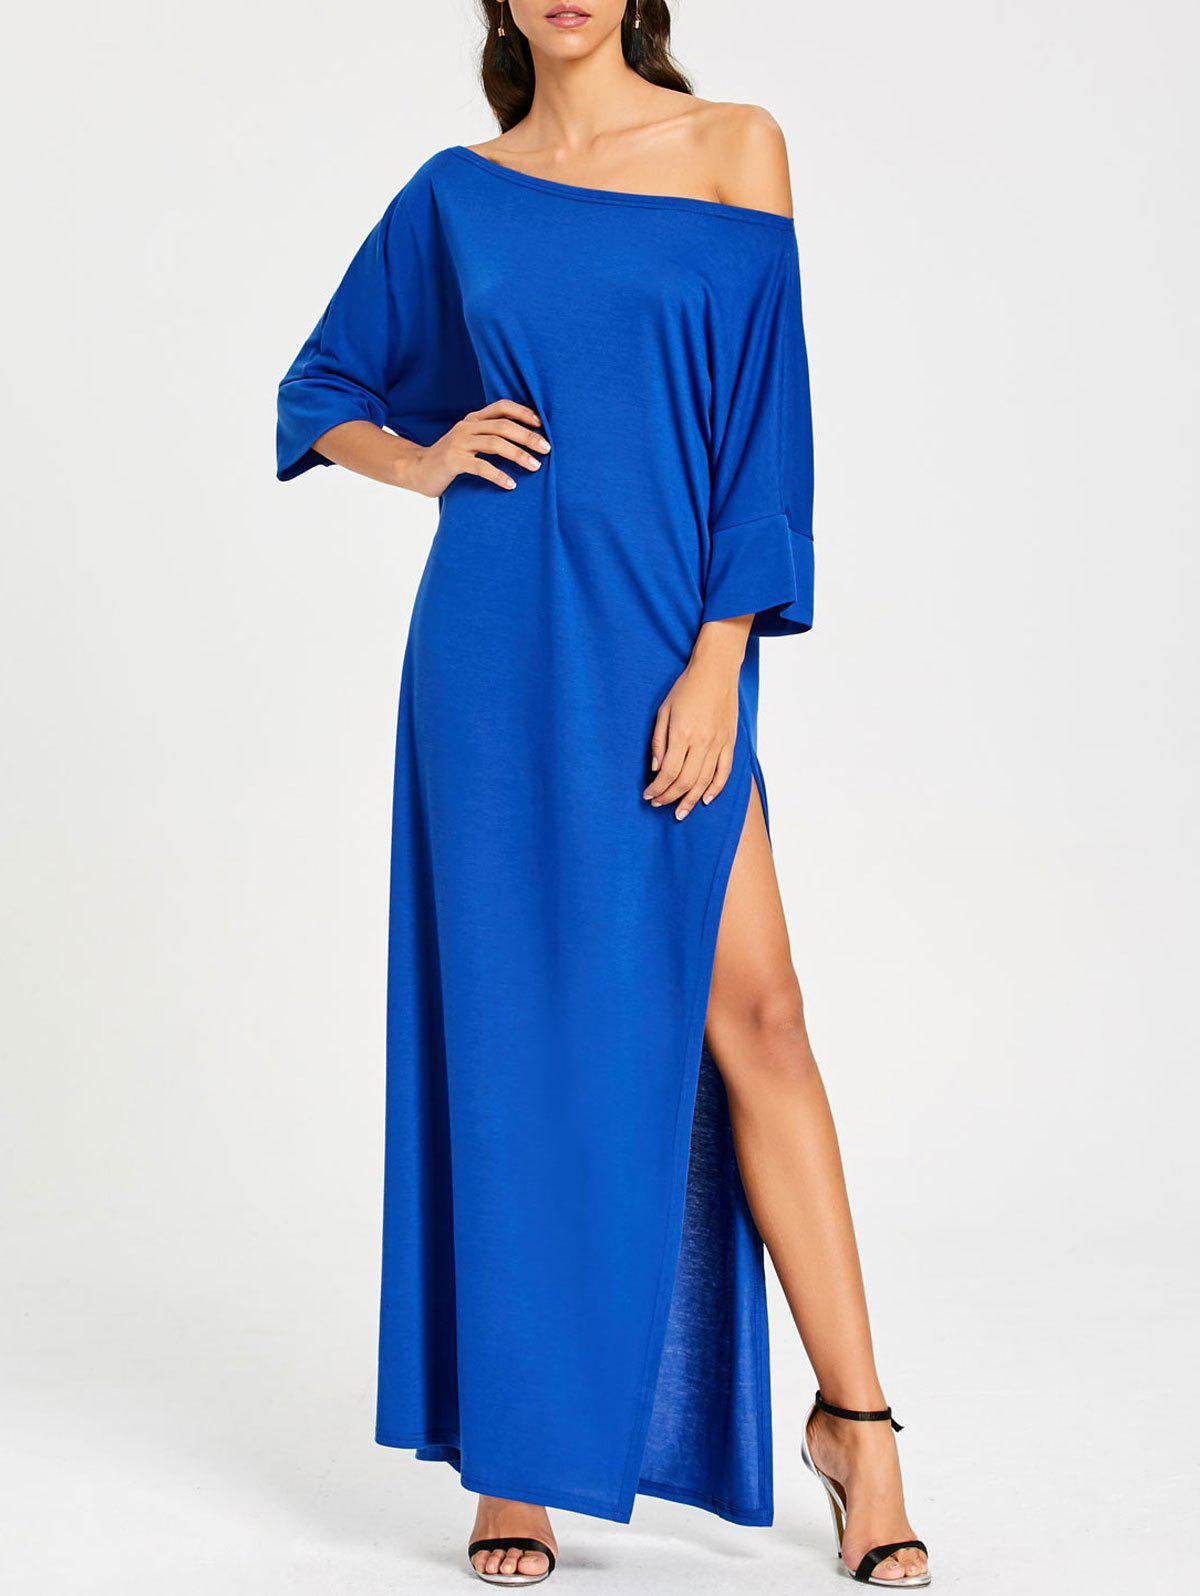 Maxi High Slit Skew Collar Dress - BLUE S